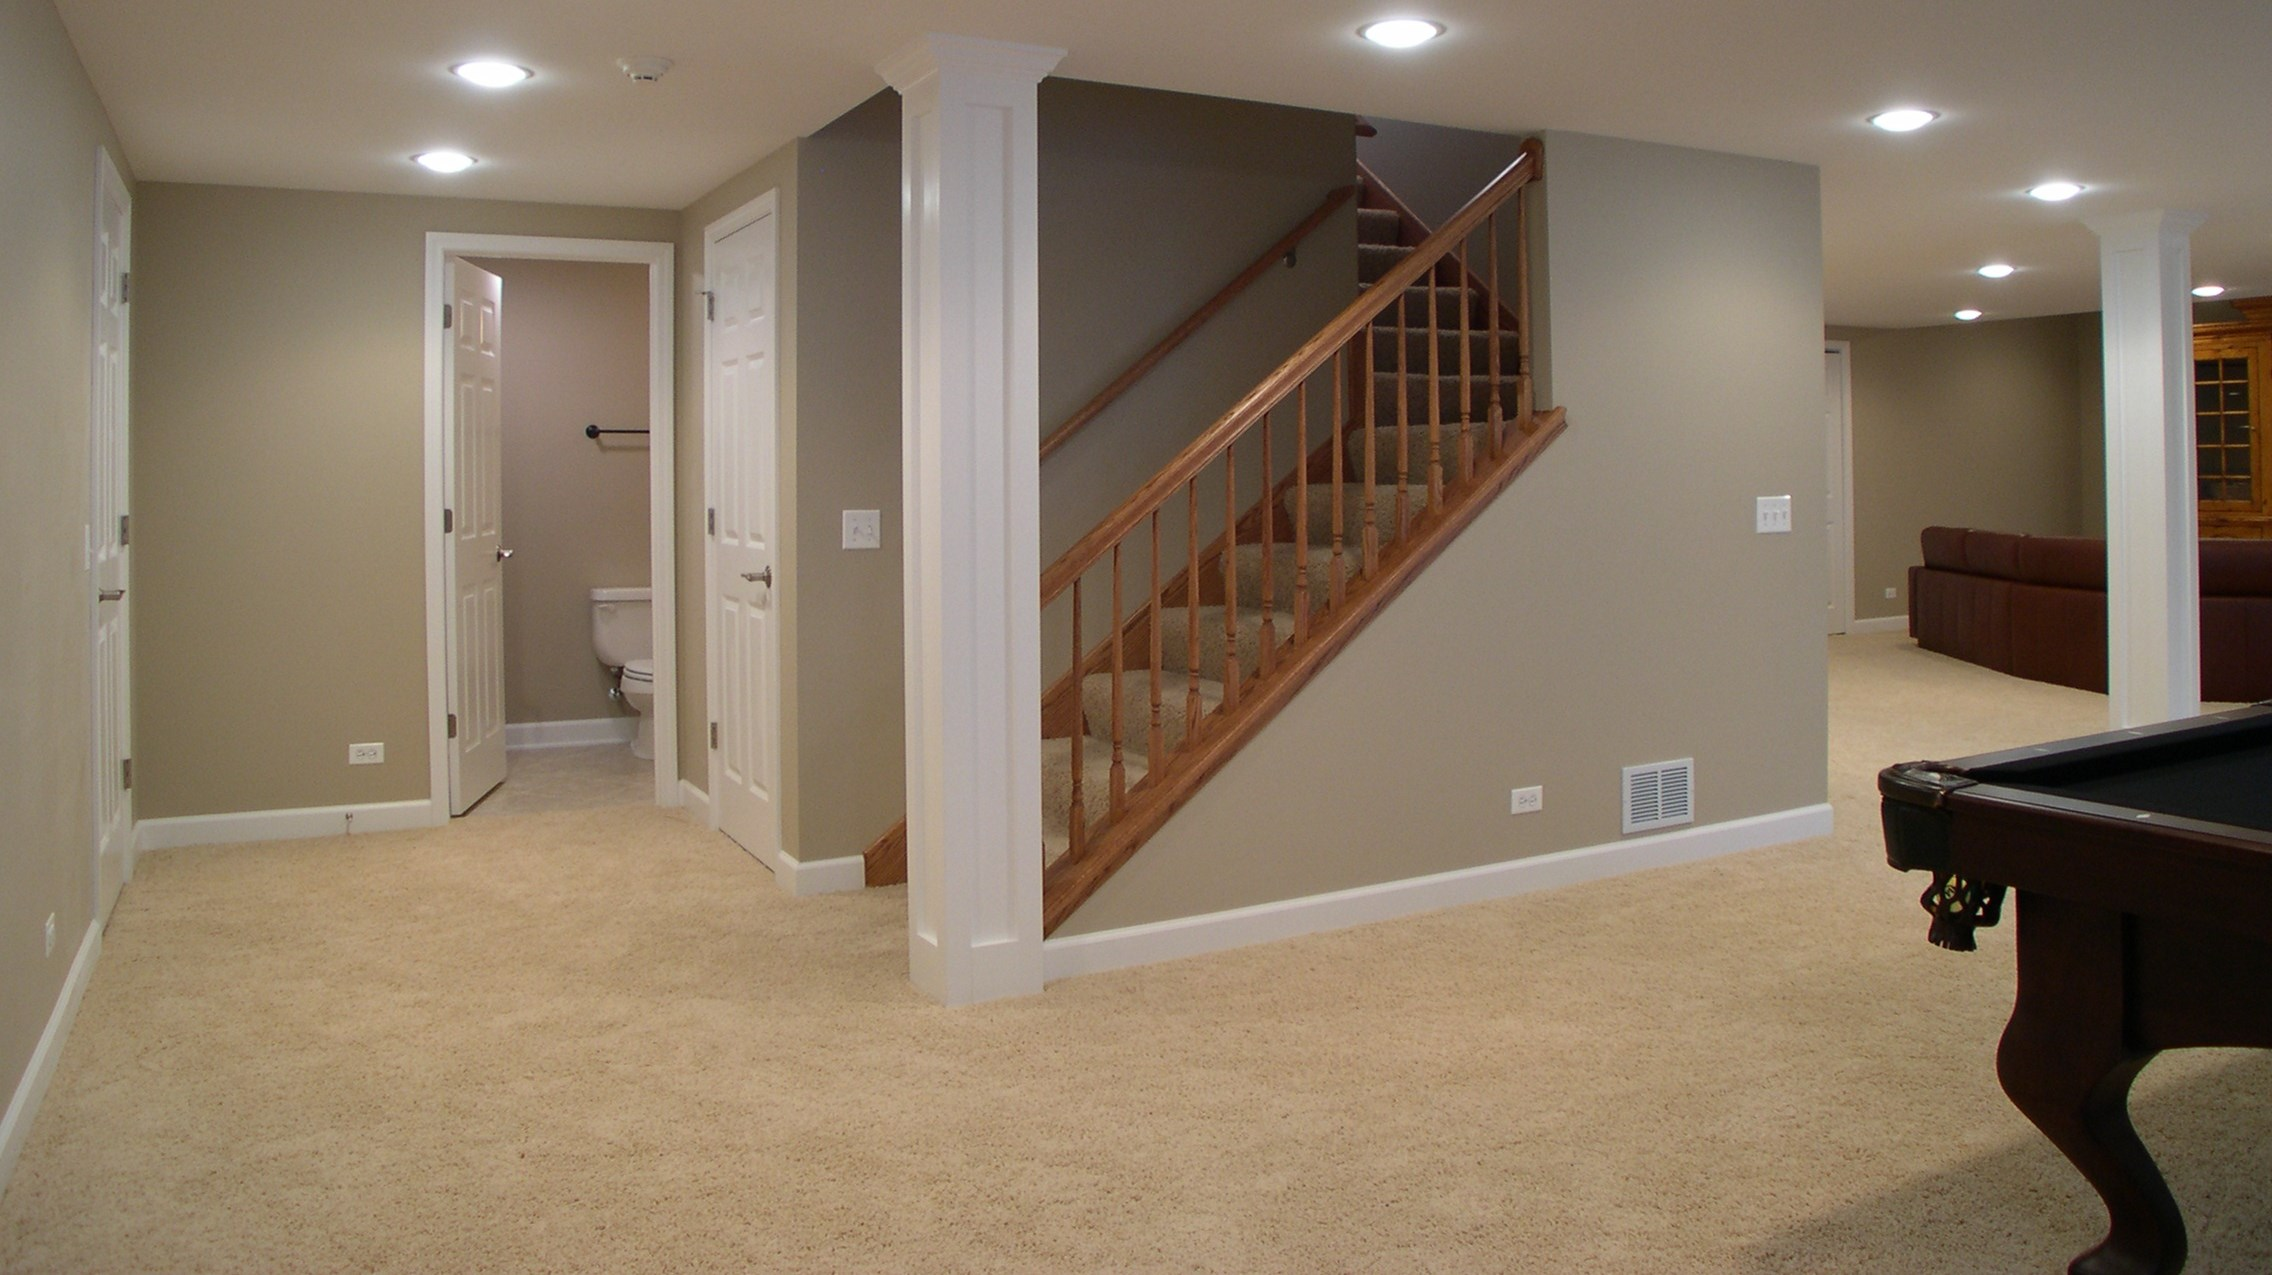 Finished Basement Remodel - Project in South Plainfield, NJ